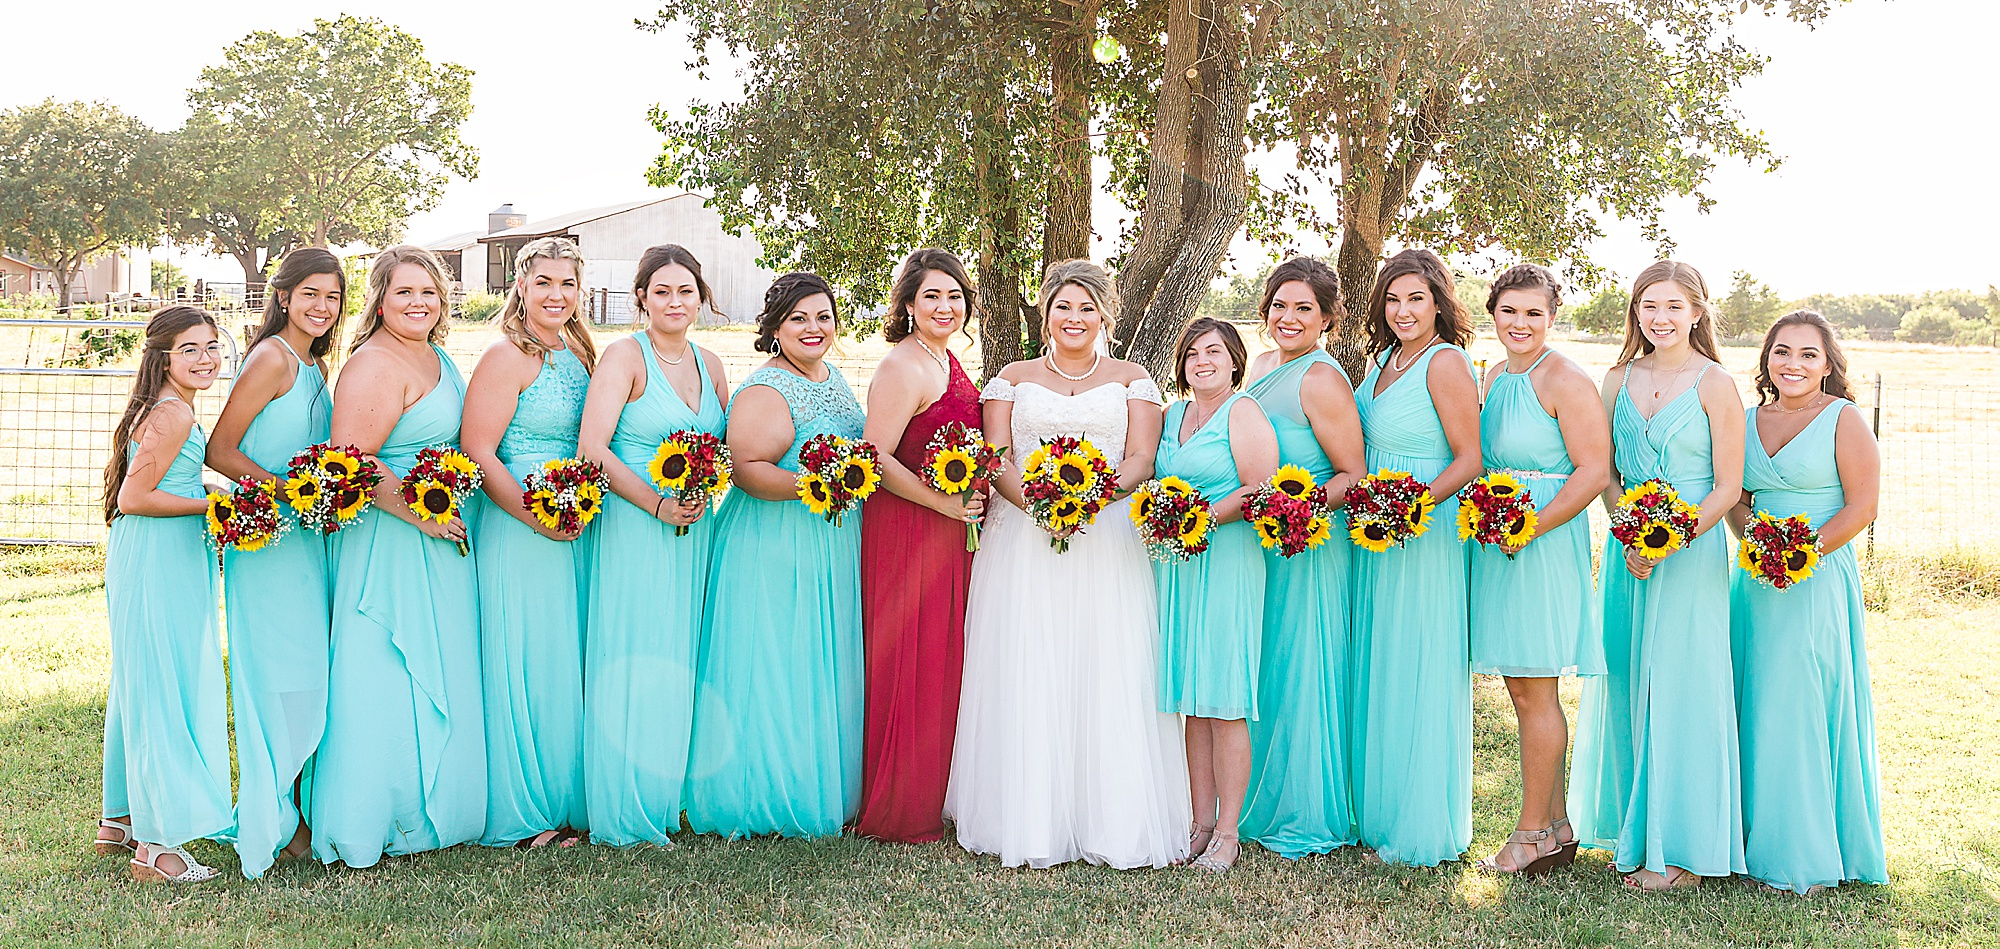 Wedding-Photographer-Rustic-Sunflower-theme-Texas-Carly-Barton-Photography_0115.jpg